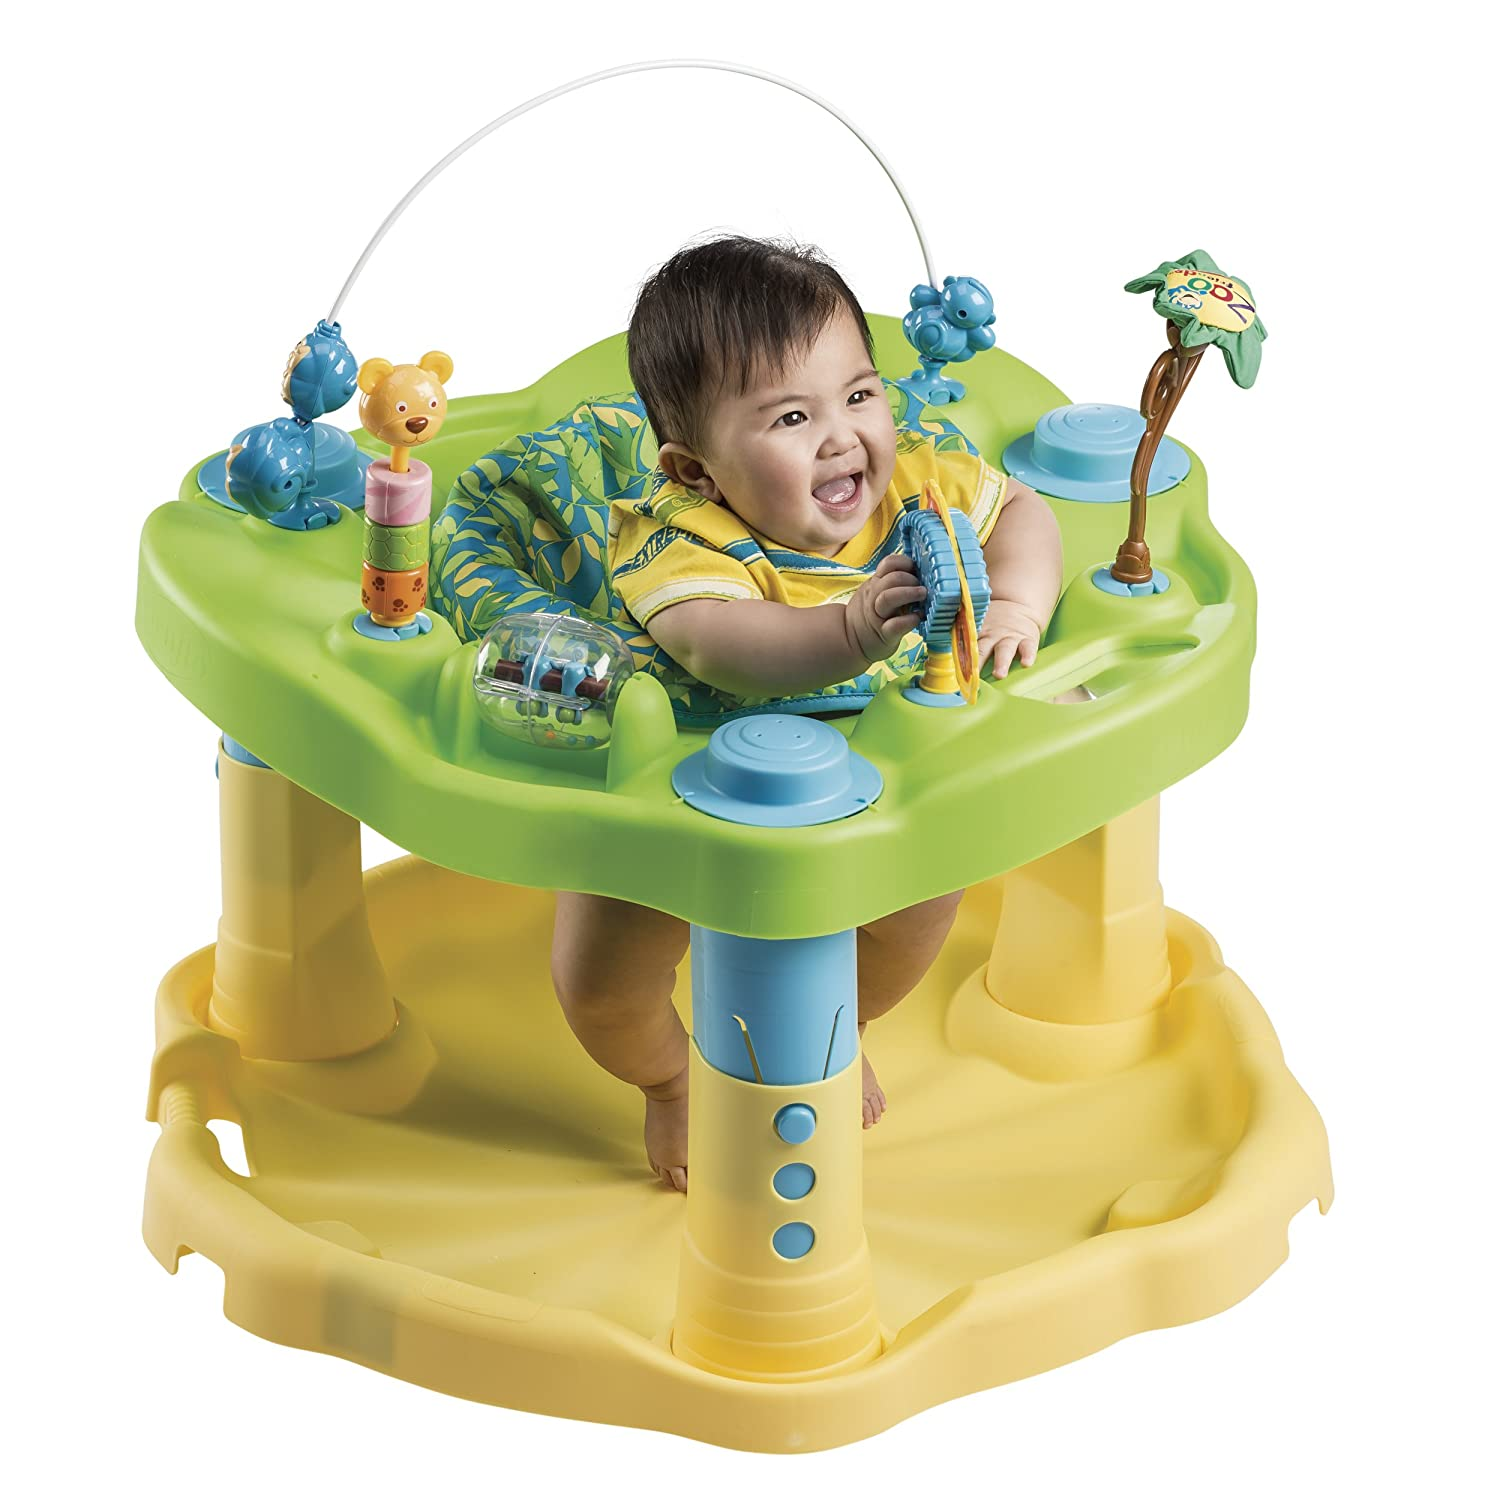 modern exersaucer exersaucer it's been delicious   - evenflo exersaucer bounce and learn activity centre zoo friends